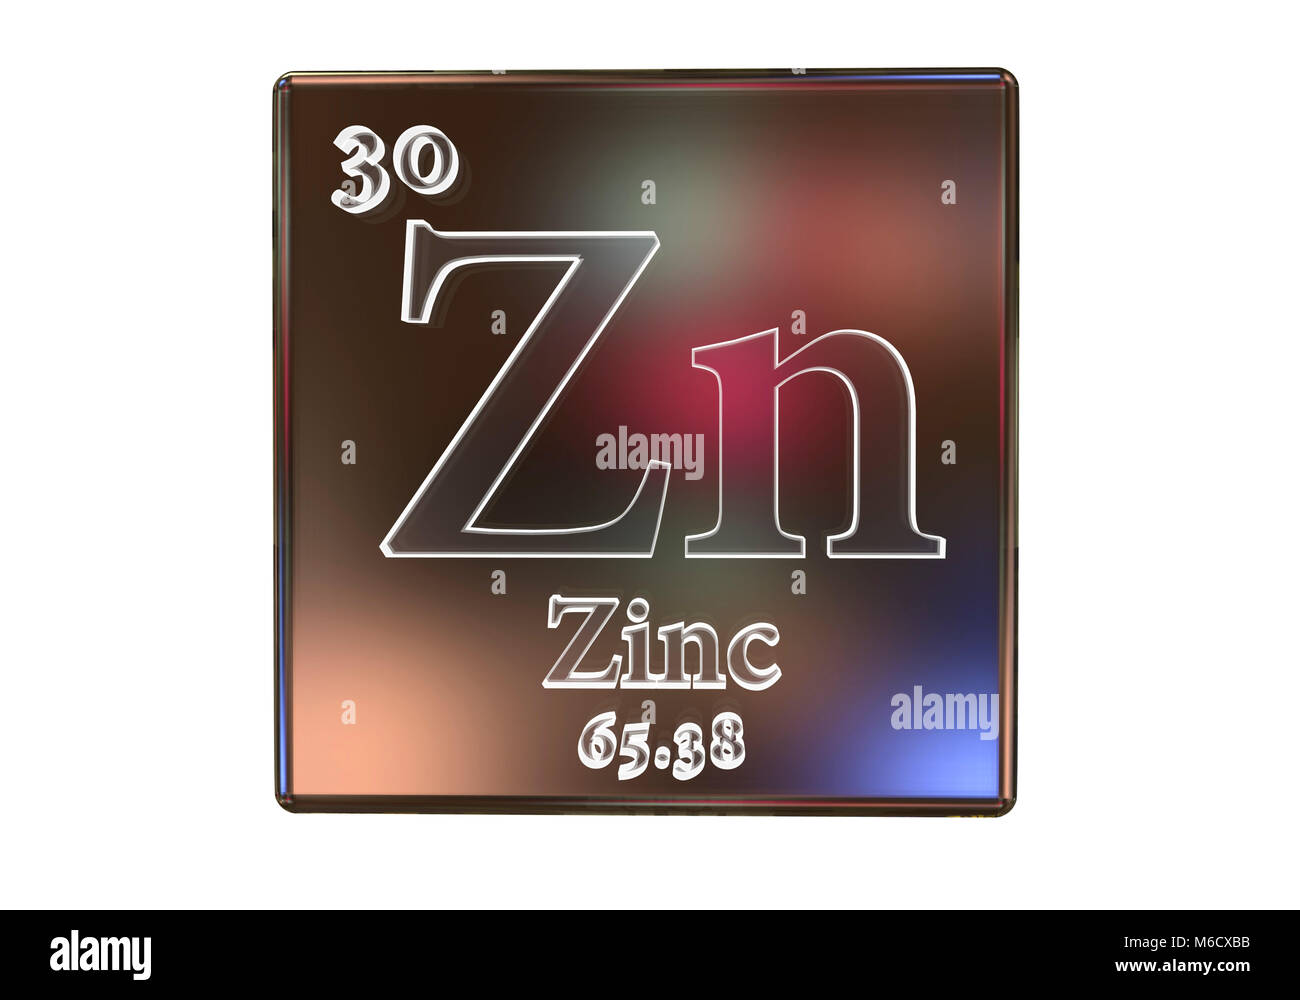 Zinc chemical element, computer illustration. - Stock Image